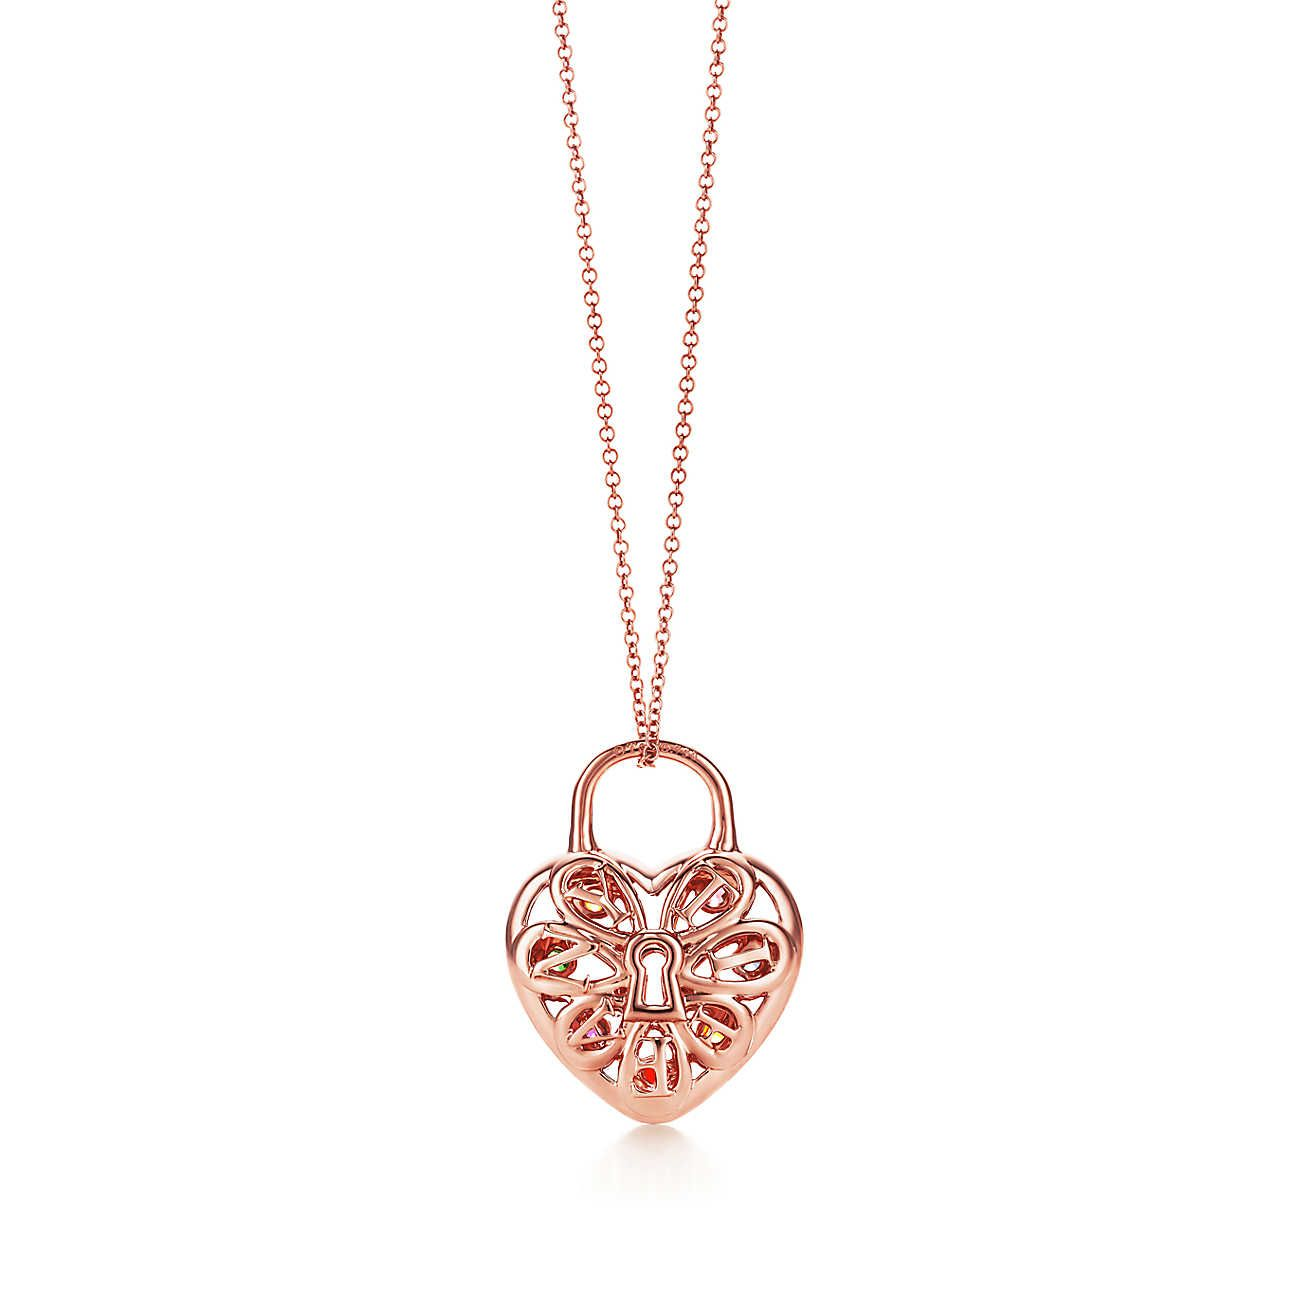 Tiffany filigree heartpendant needs pinterest necklaces for women aloadofball Images